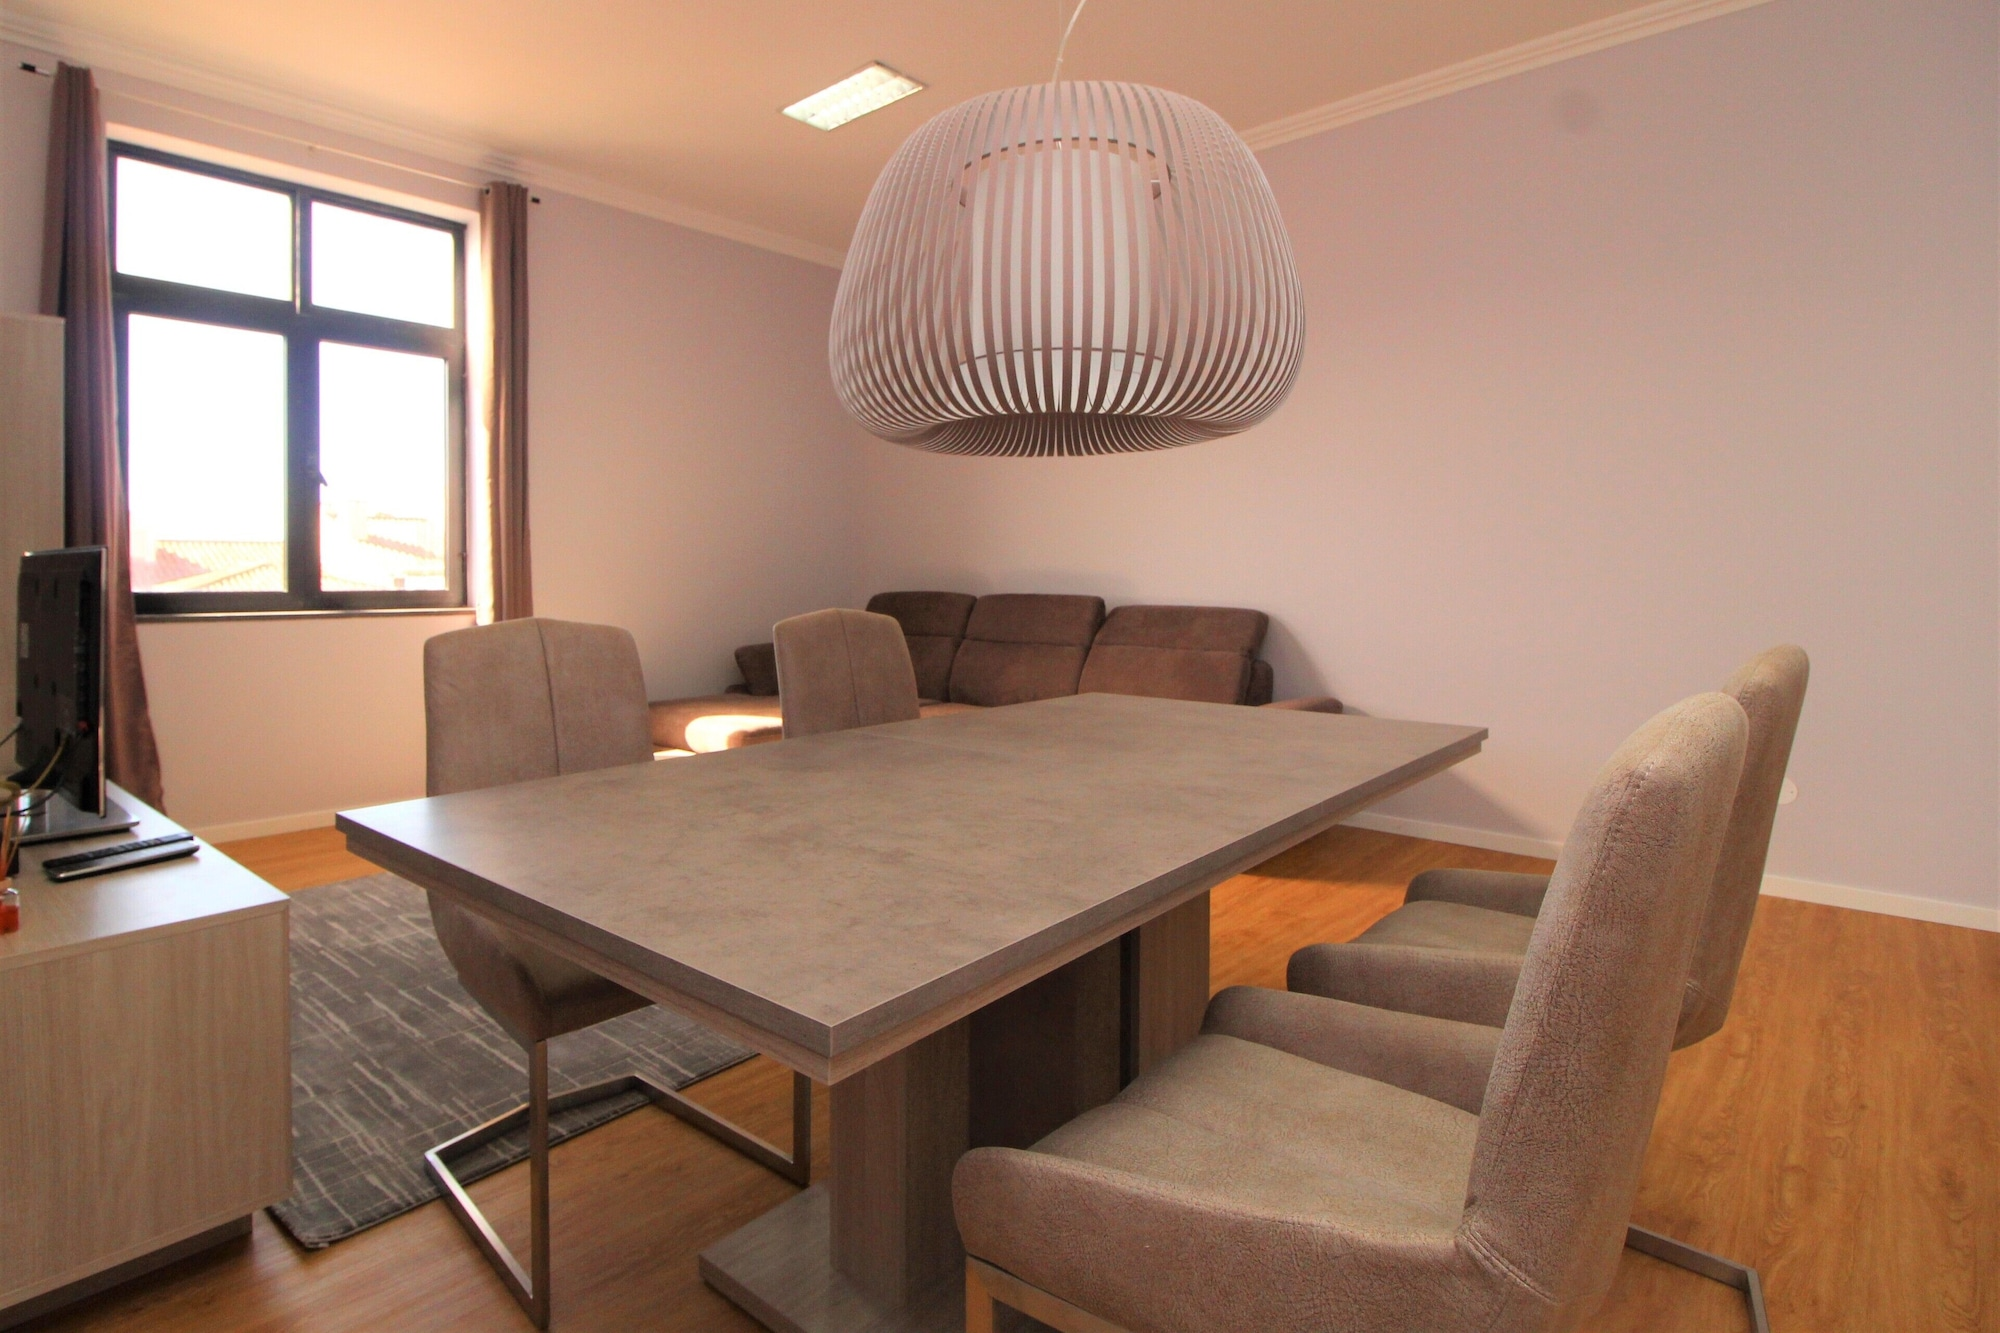 Design Apartment, Funchal